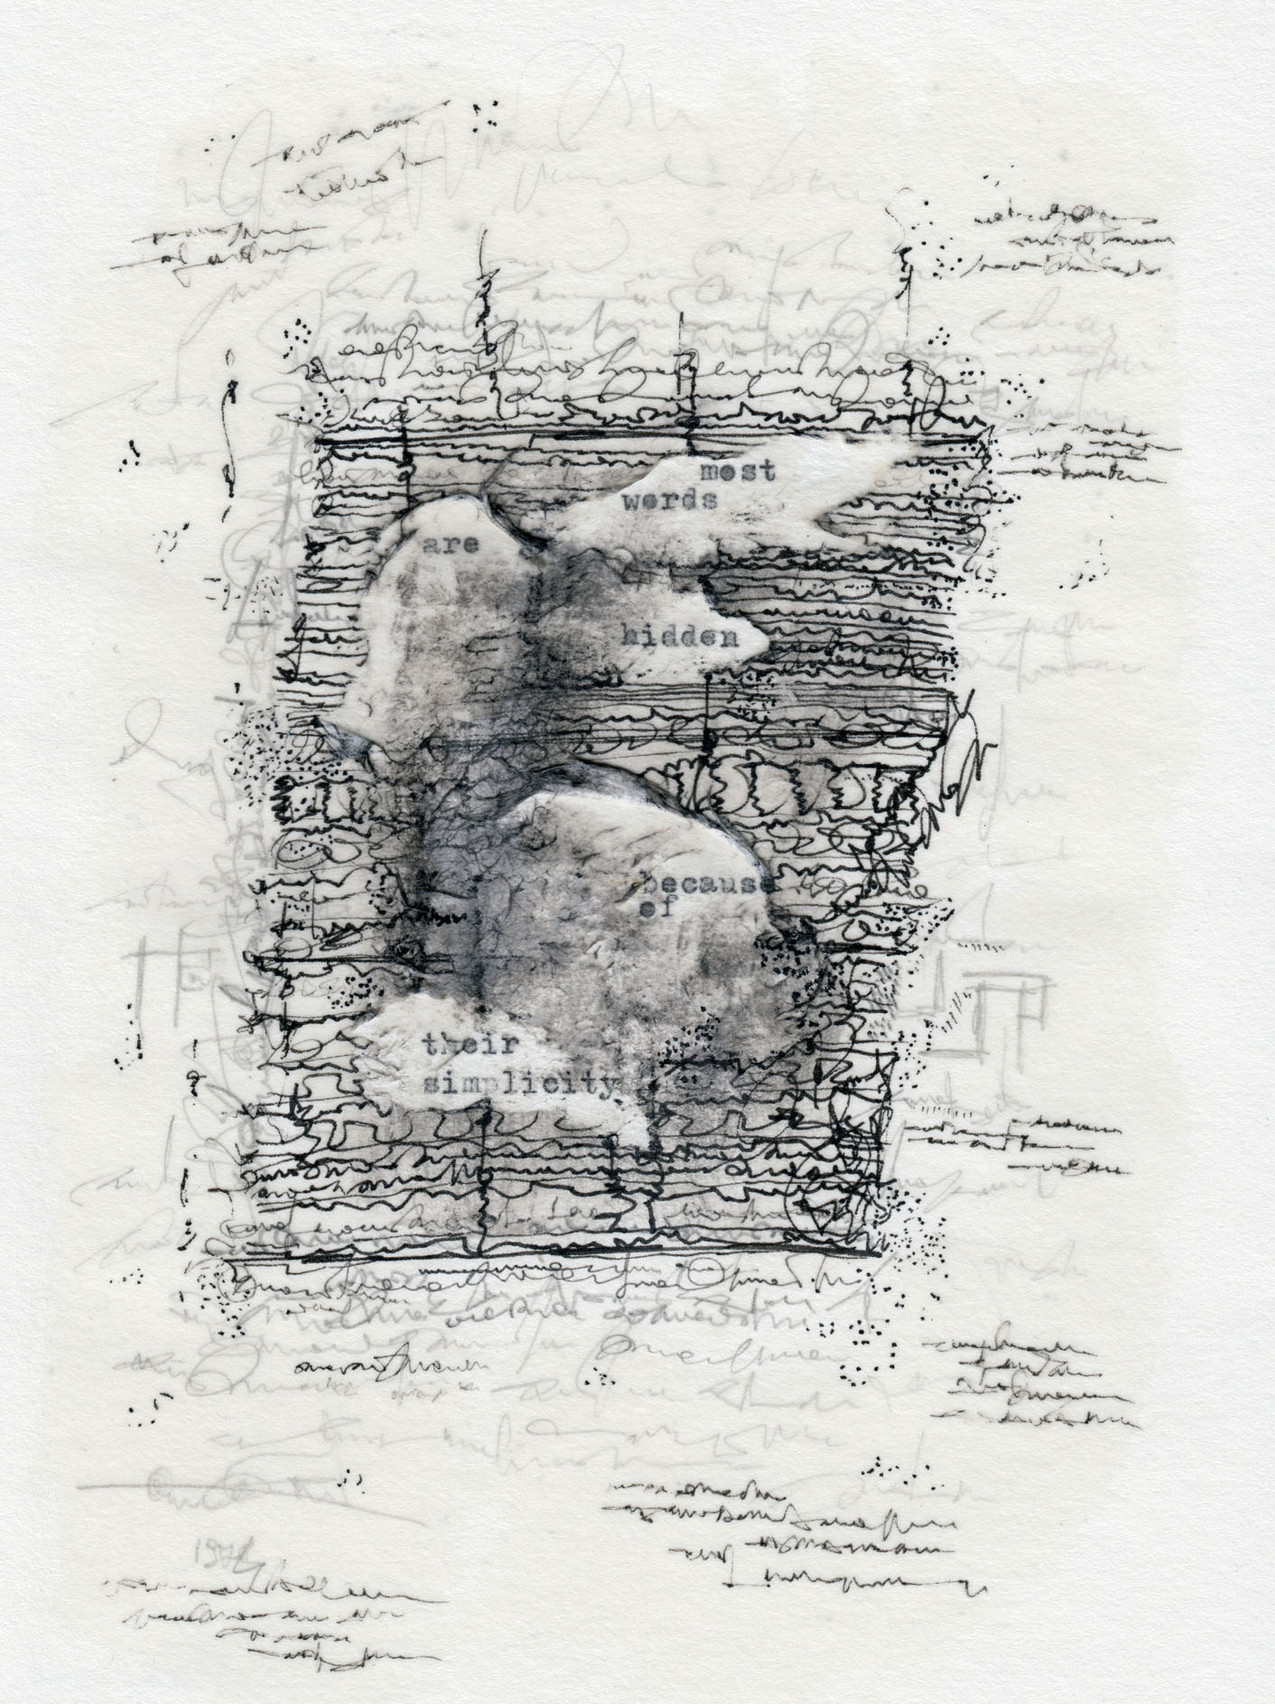 Federico Federici, Why most words are hidden